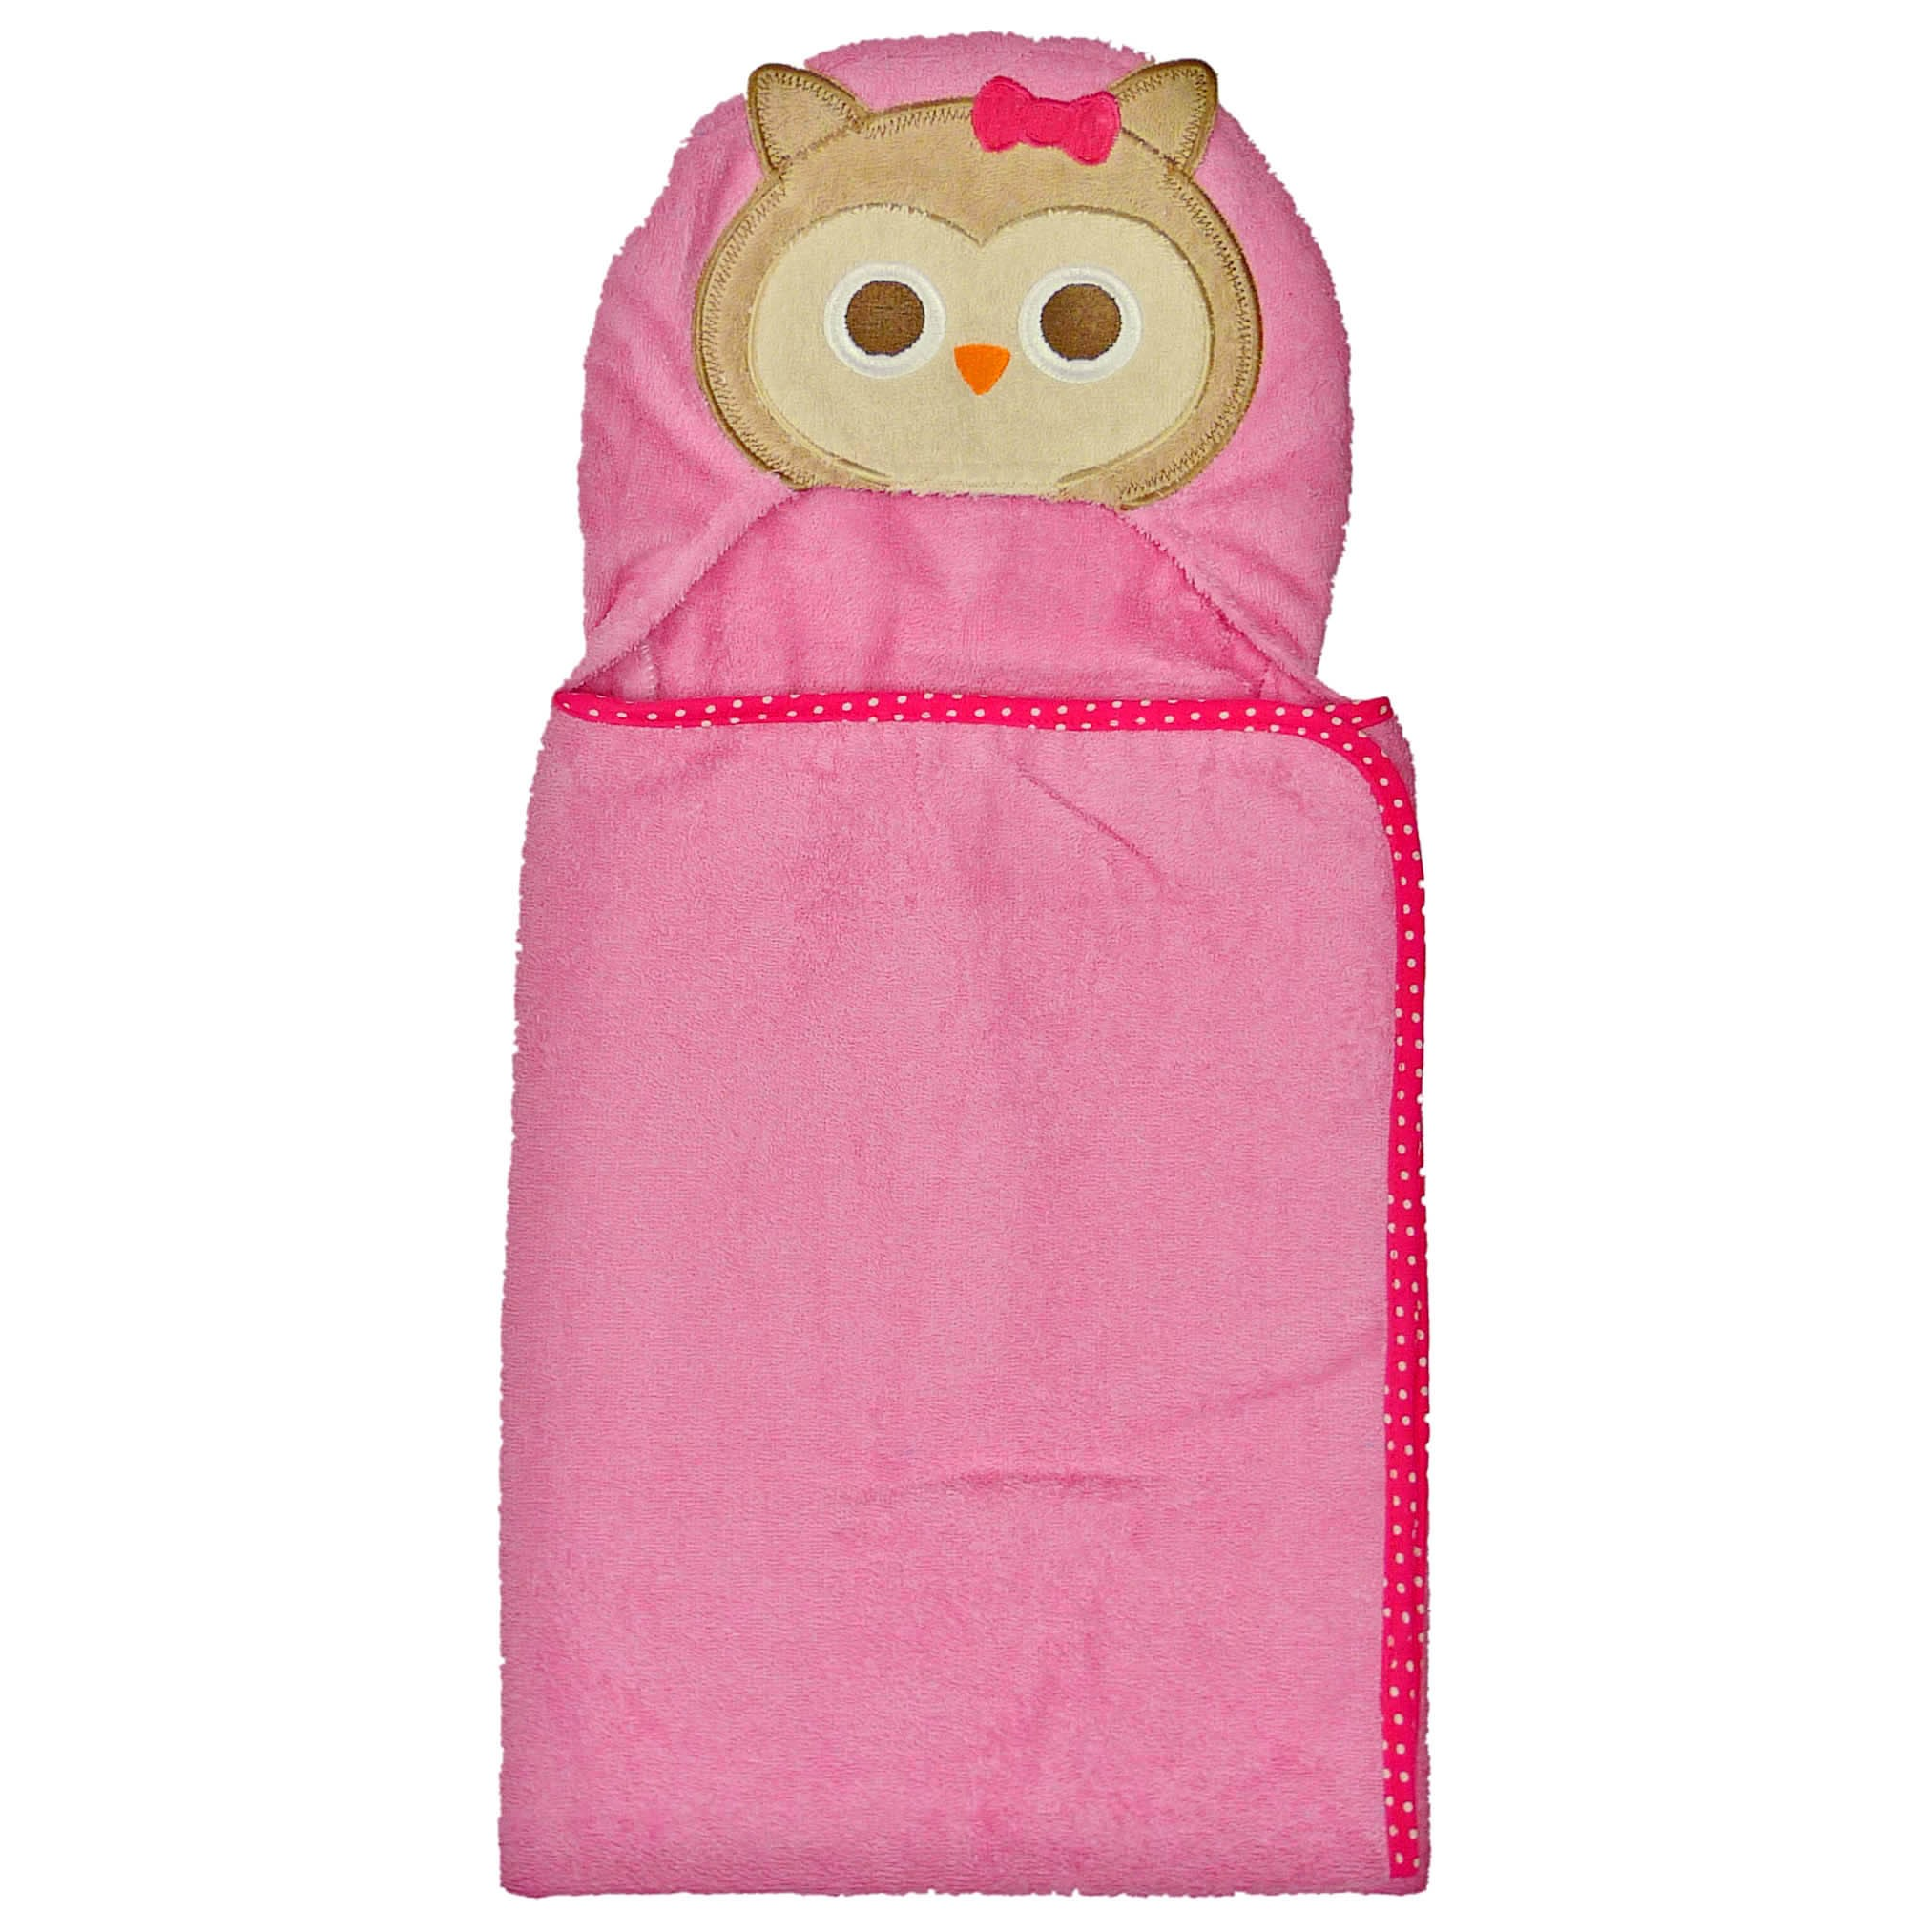 Neat Solutions 3D Applique Woven Terry Bath Wrap, Owl